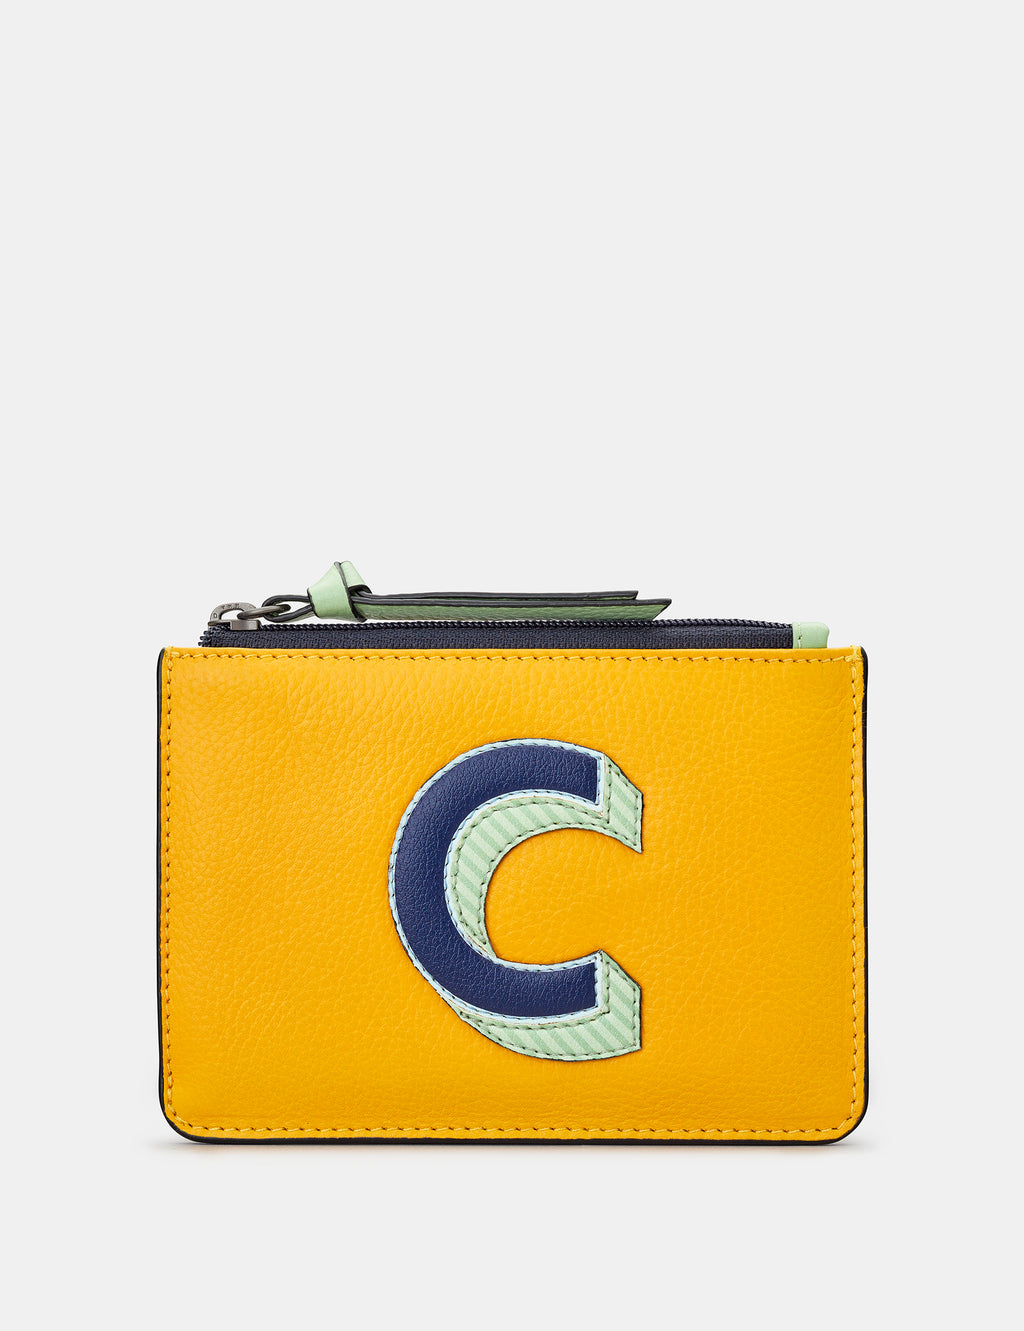 C Initials Mustard Yellow Leather Zip Top Purse